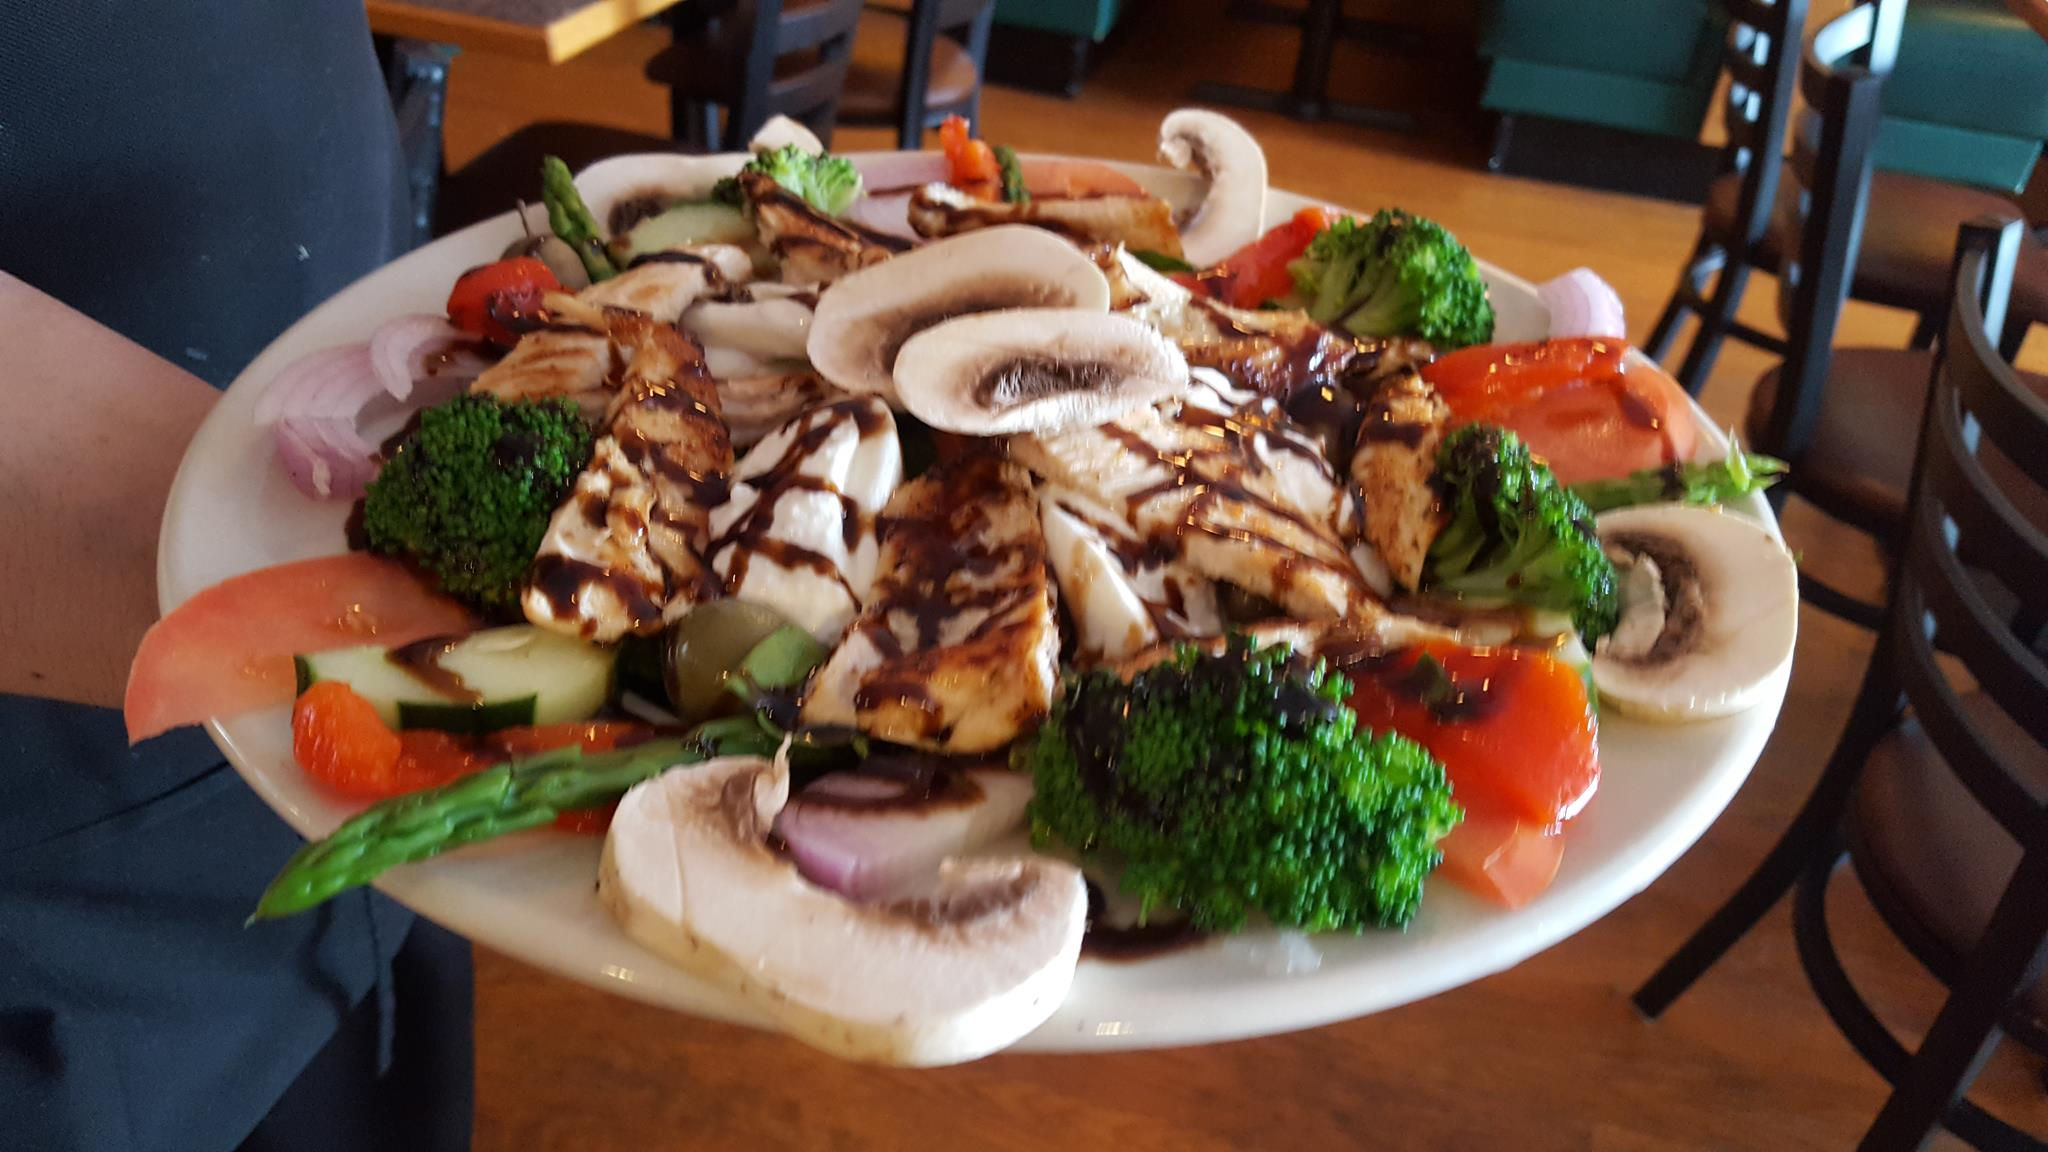 plate of chicken, fresh mozzarella, mushroom, red onion, tomato, broccoli and asparagus topped with balsamic drizzle